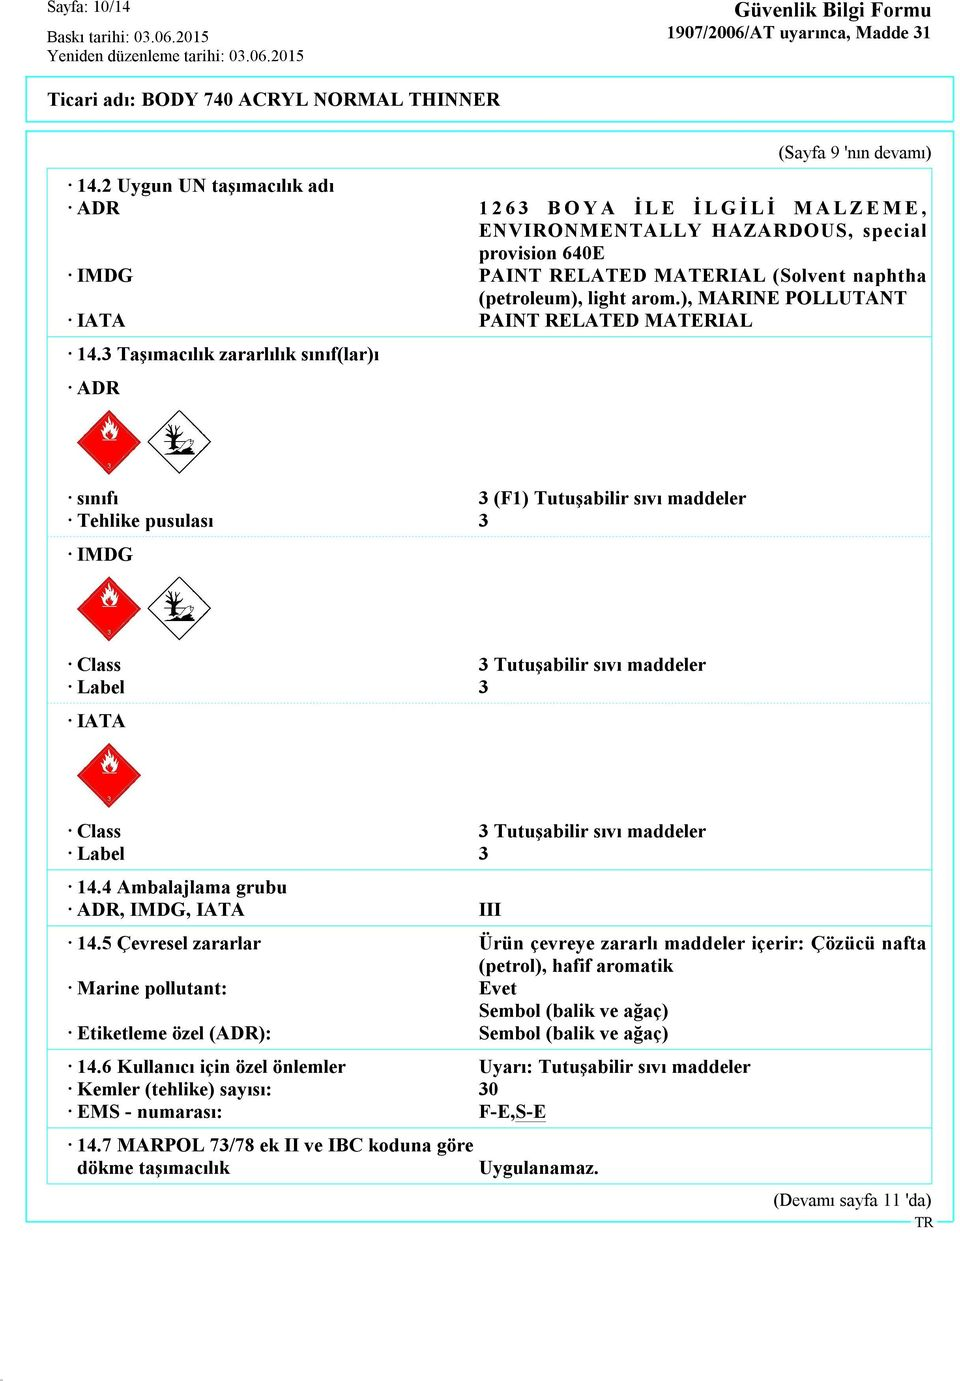 ), MARINE POLLUTANT IATA PAINT RELATED MATERIAL 14.